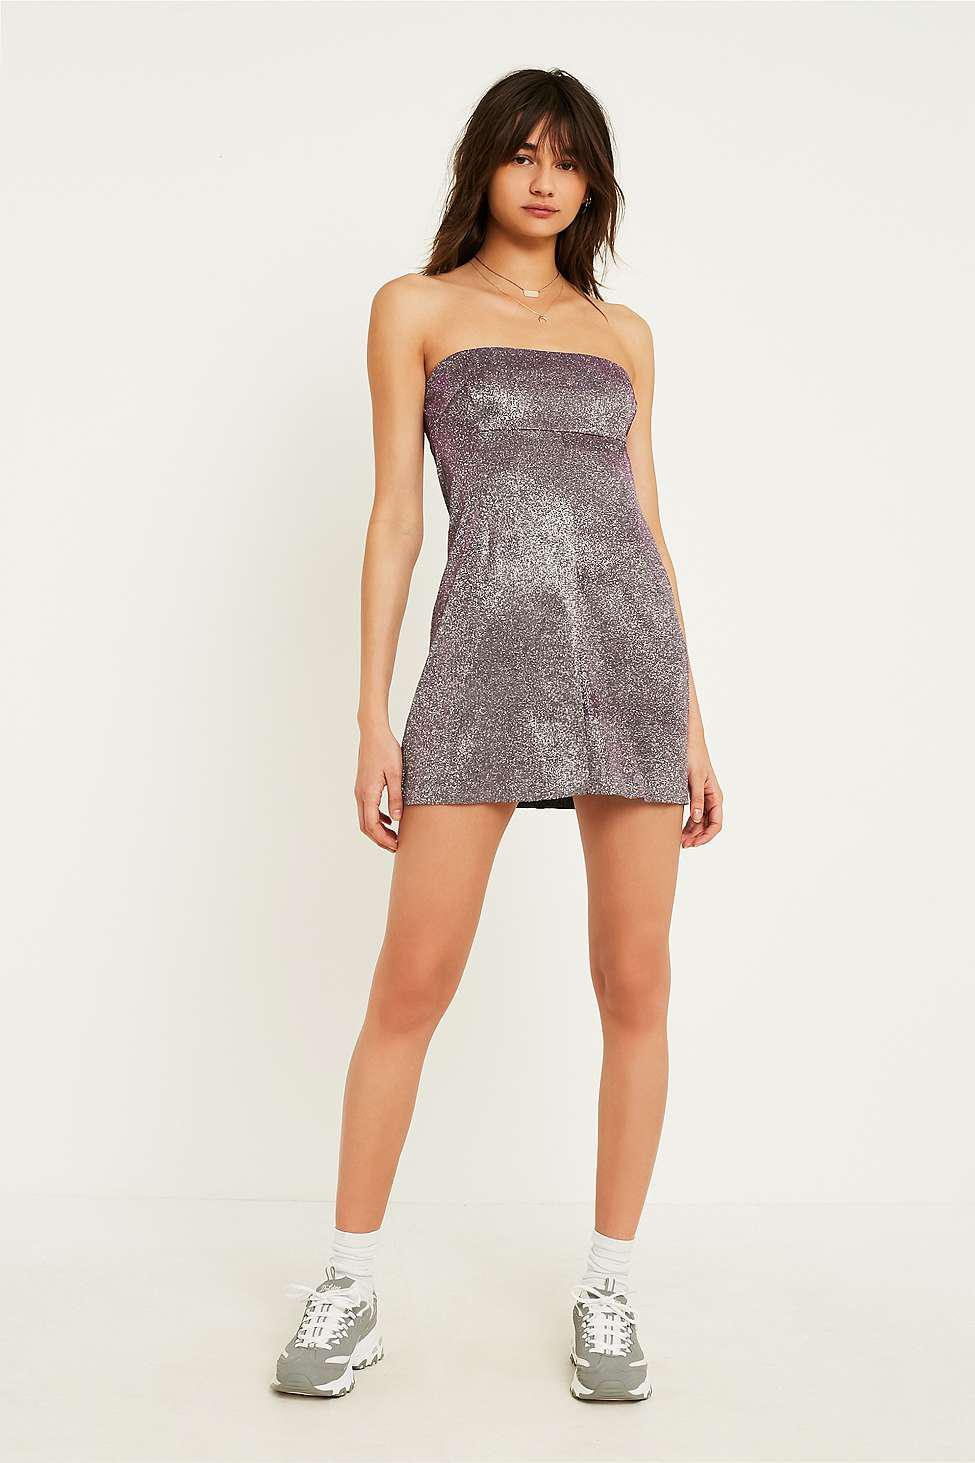 0683d0ee87 Urban Outfitters Uo Moonbeam Metallic Tube Top Dress - Womens M in ...